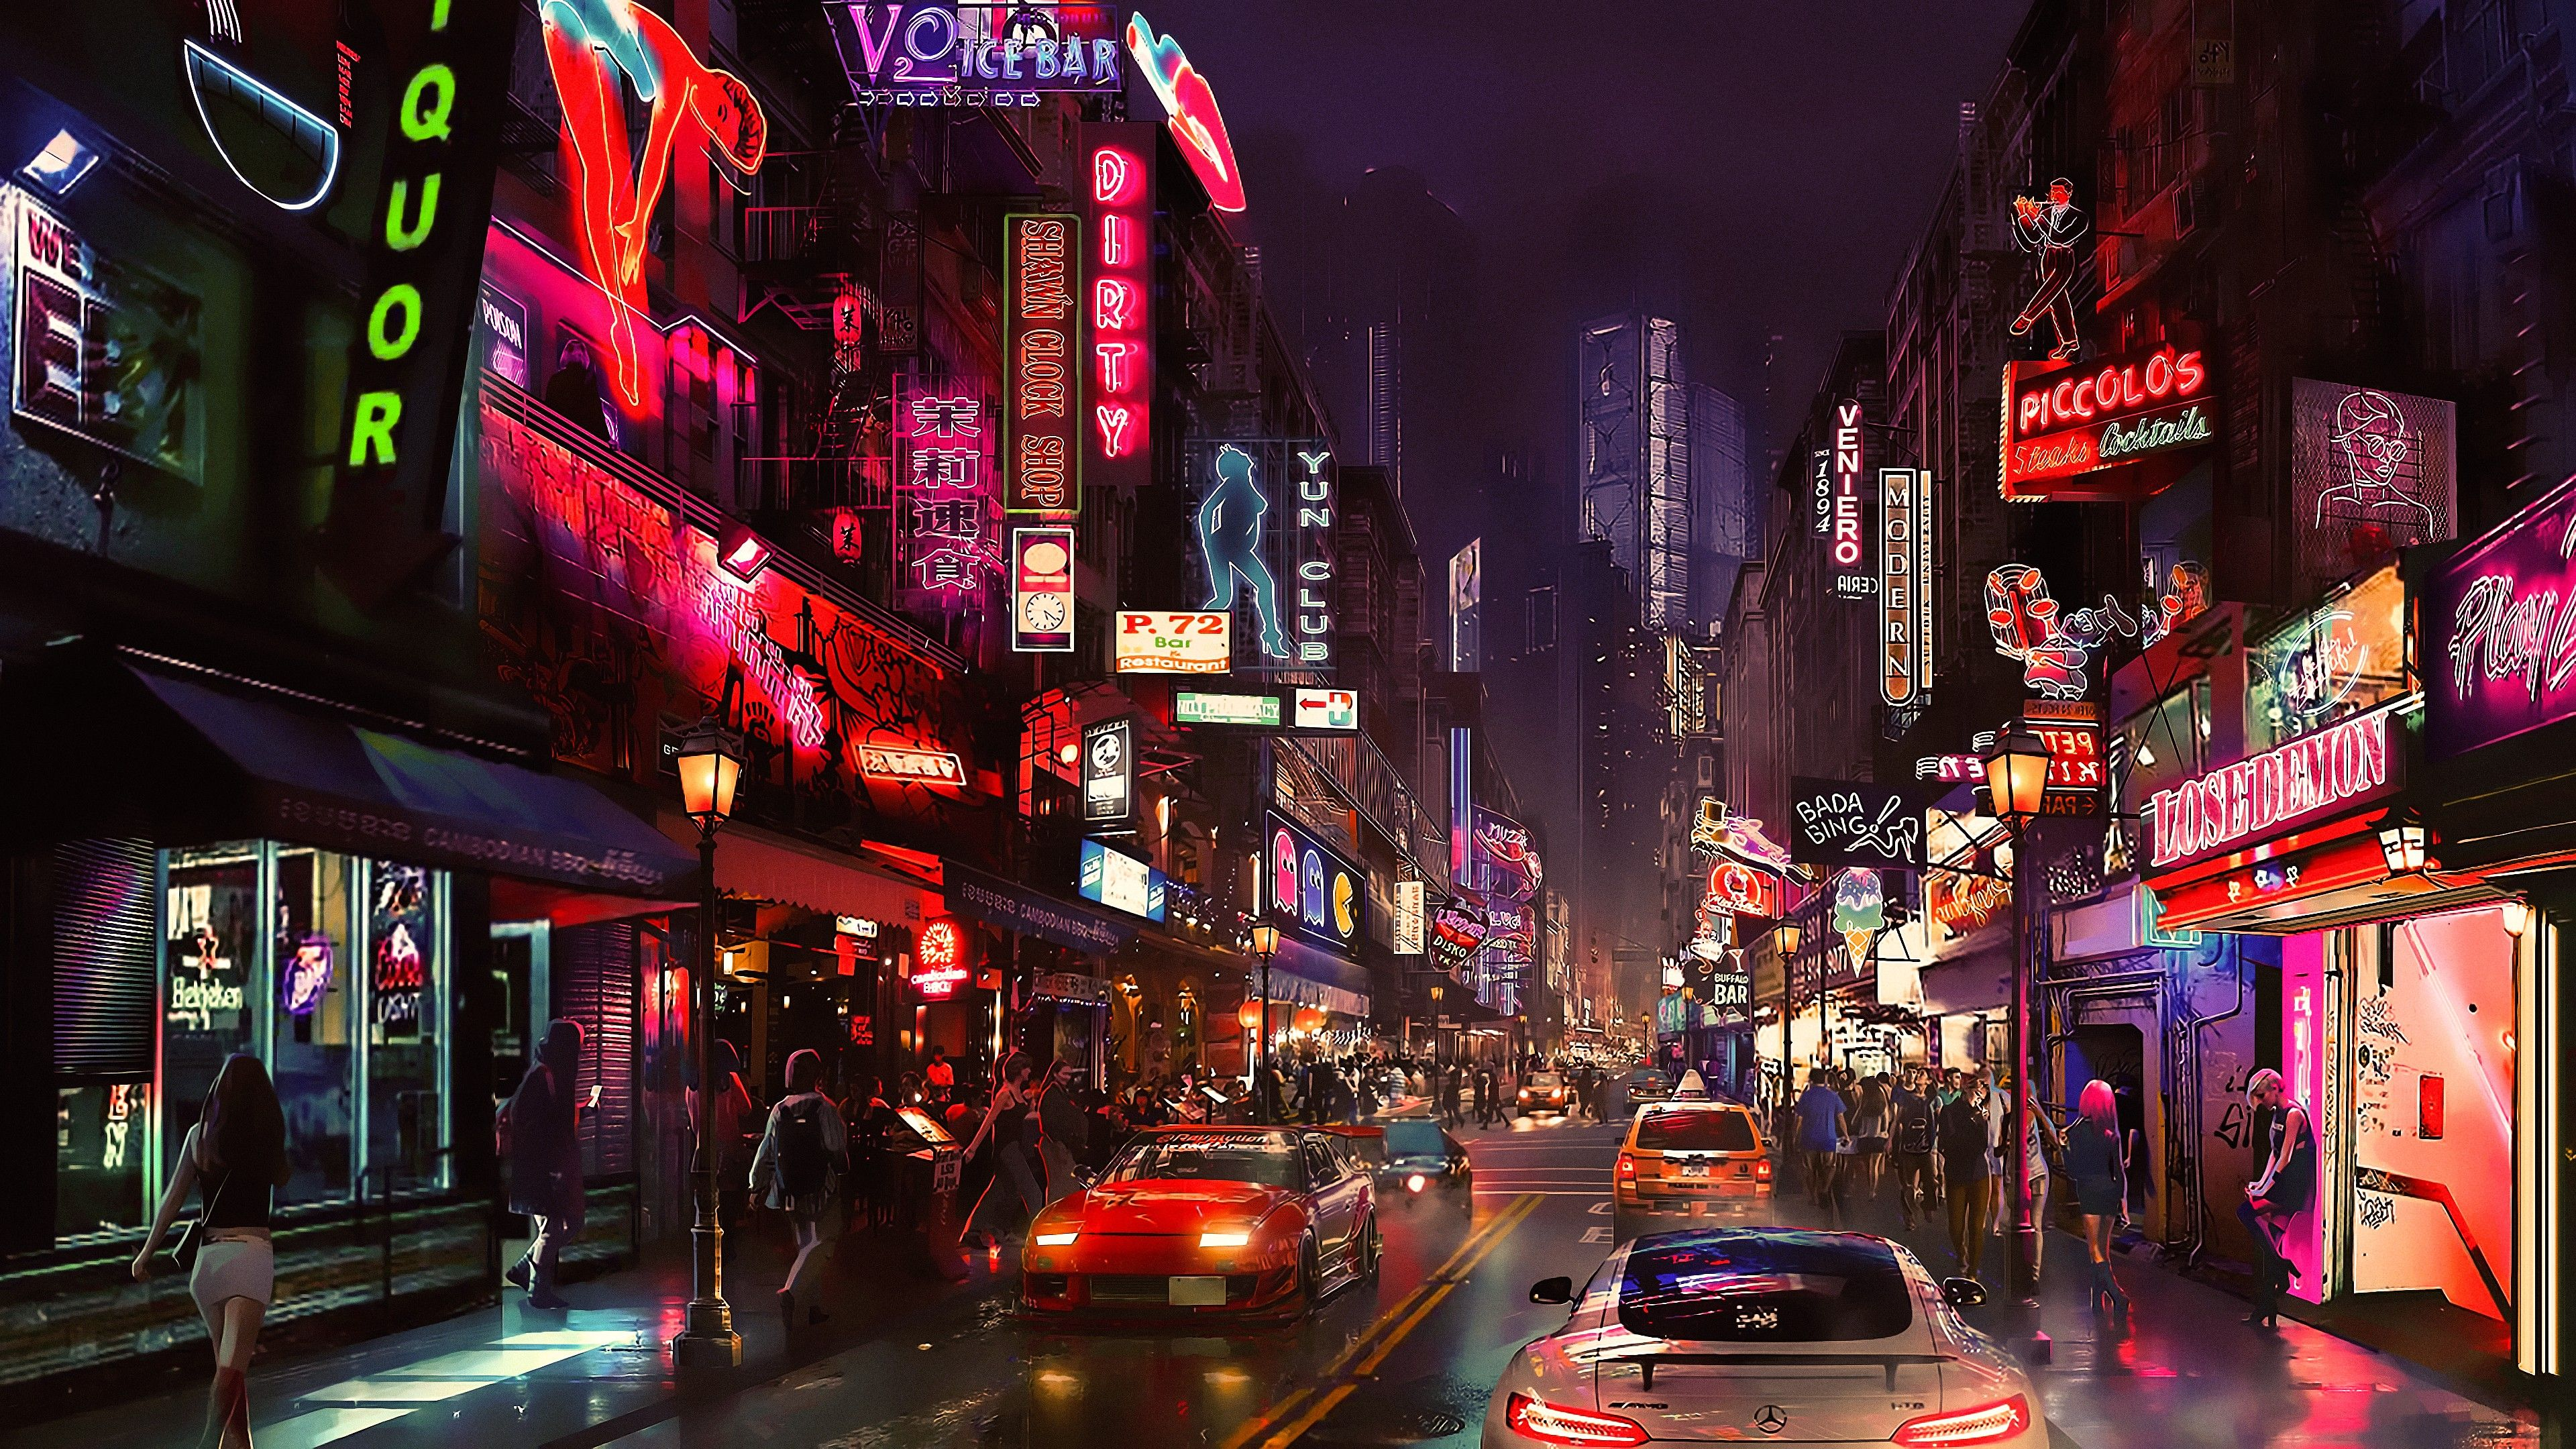 cyberpunk future world 4K 6413 Futuristic city